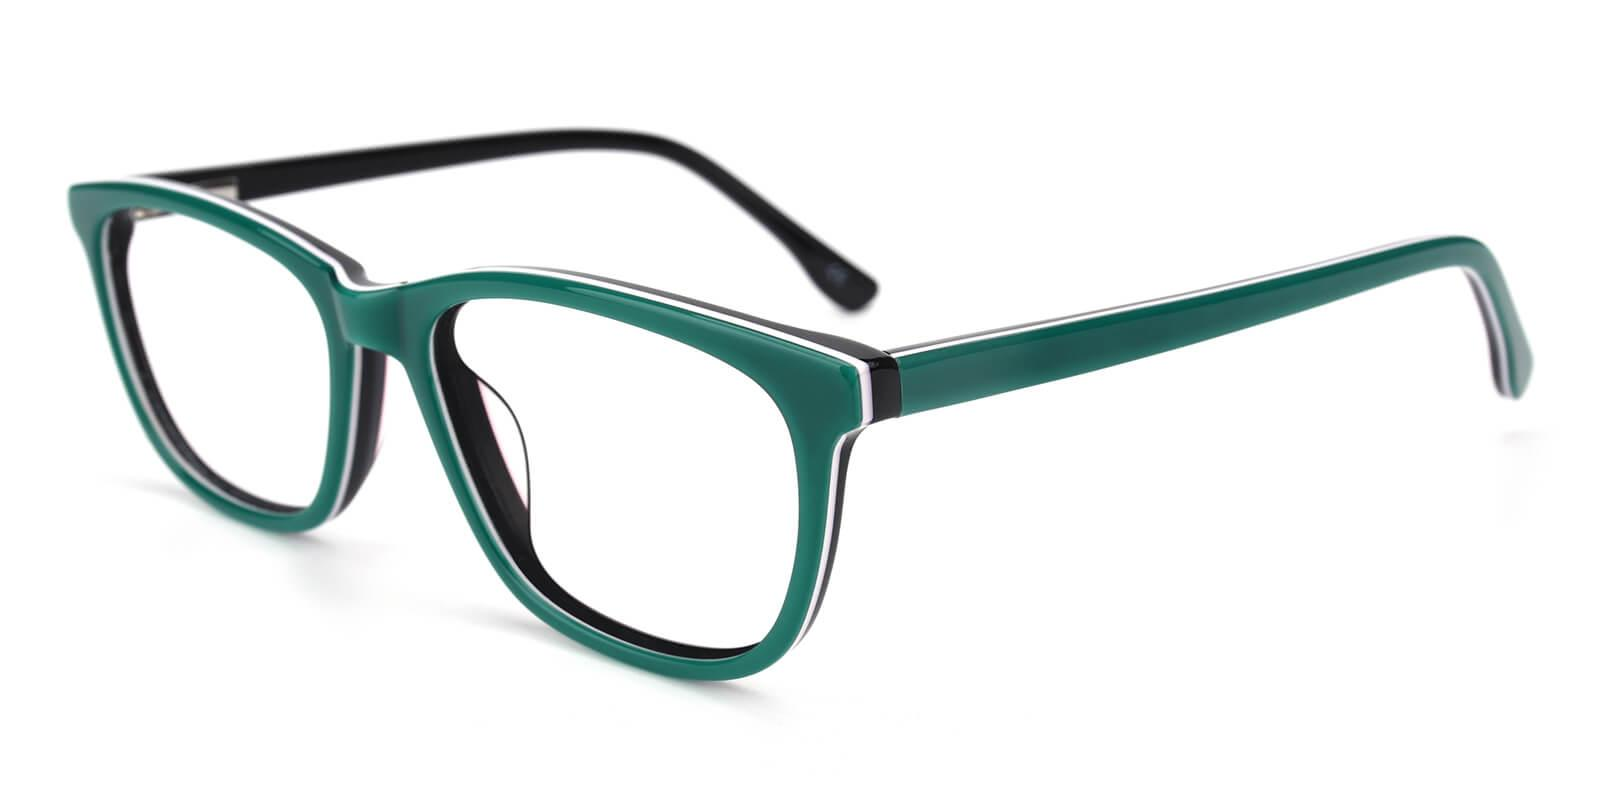 Emblem-Green-Square / Cat-Acetate-Eyeglasses-additional1